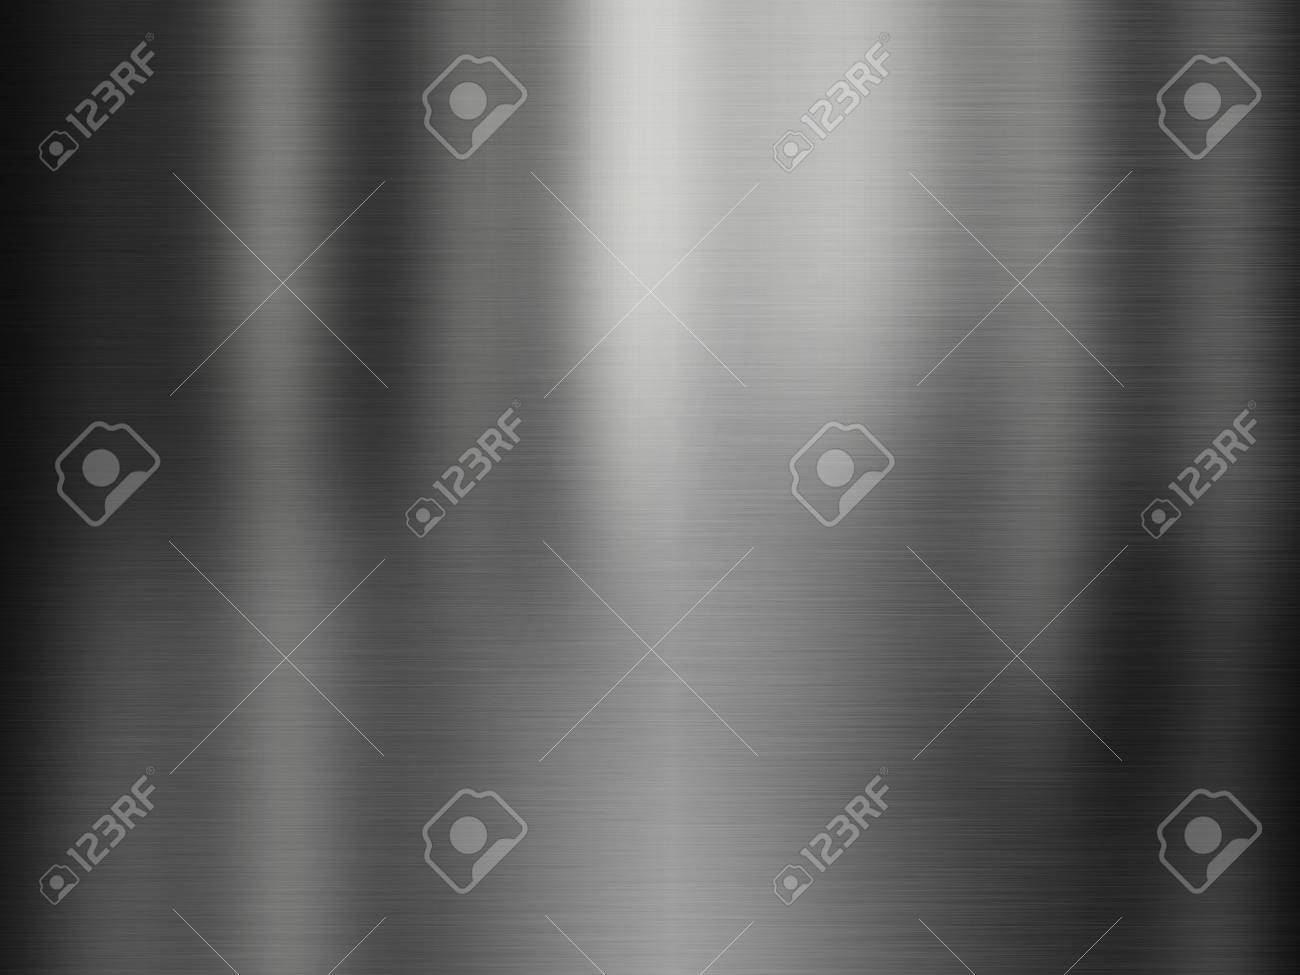 Stainless steel texture or metal texture background Banque d'images - 75076730